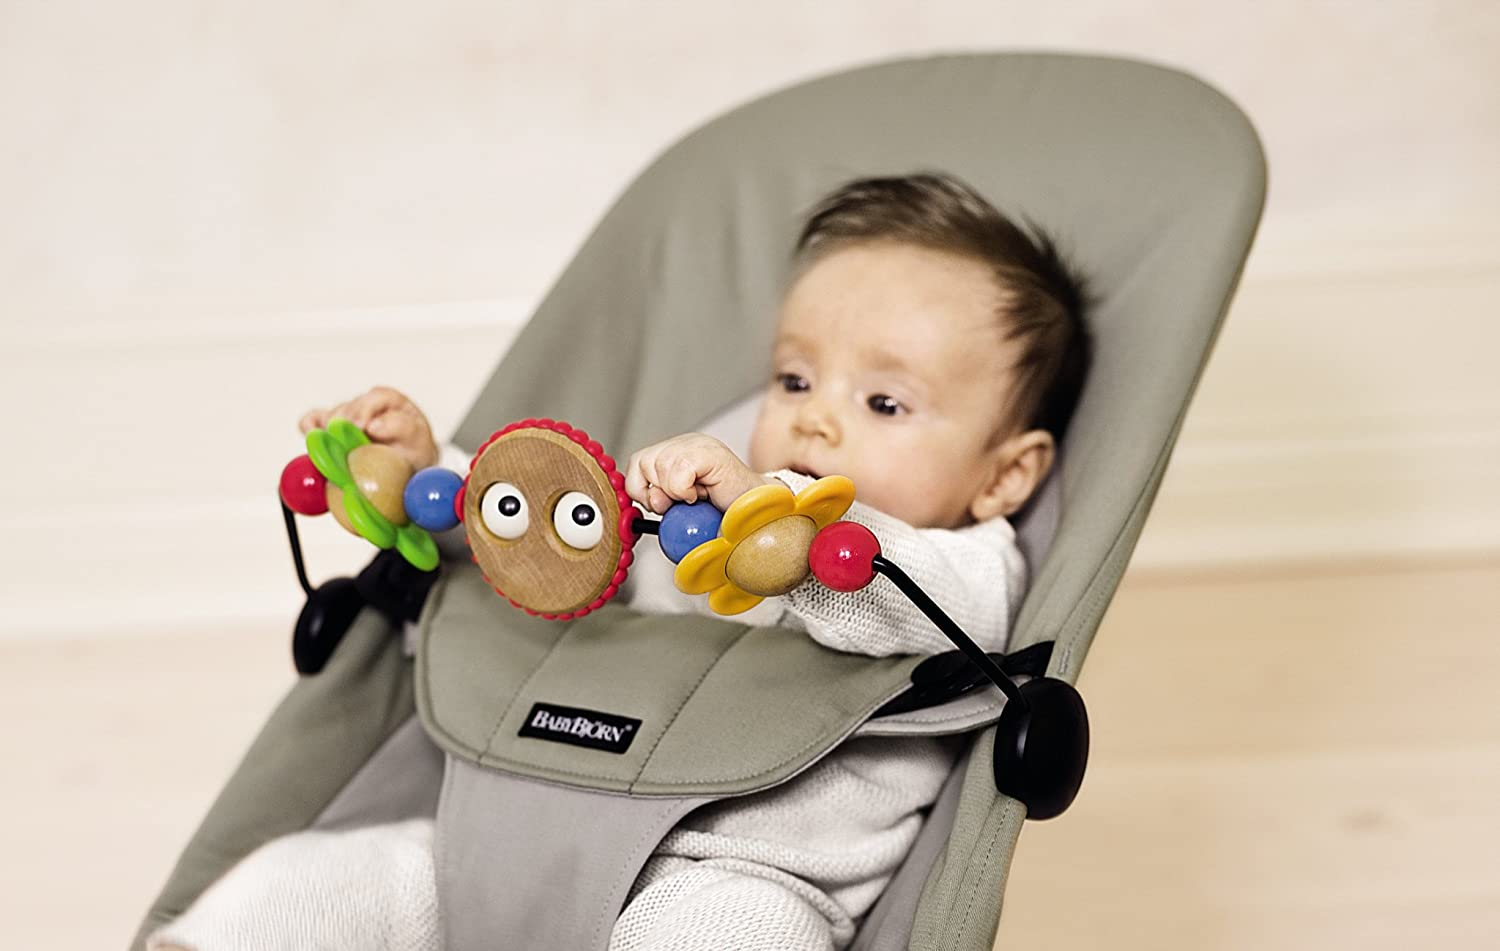 ee35359434a Amazon.com   BABYBJORN Wooden Toy for Bouncer - Googly Eyes   Infant  Bouncers And Rockers   Baby